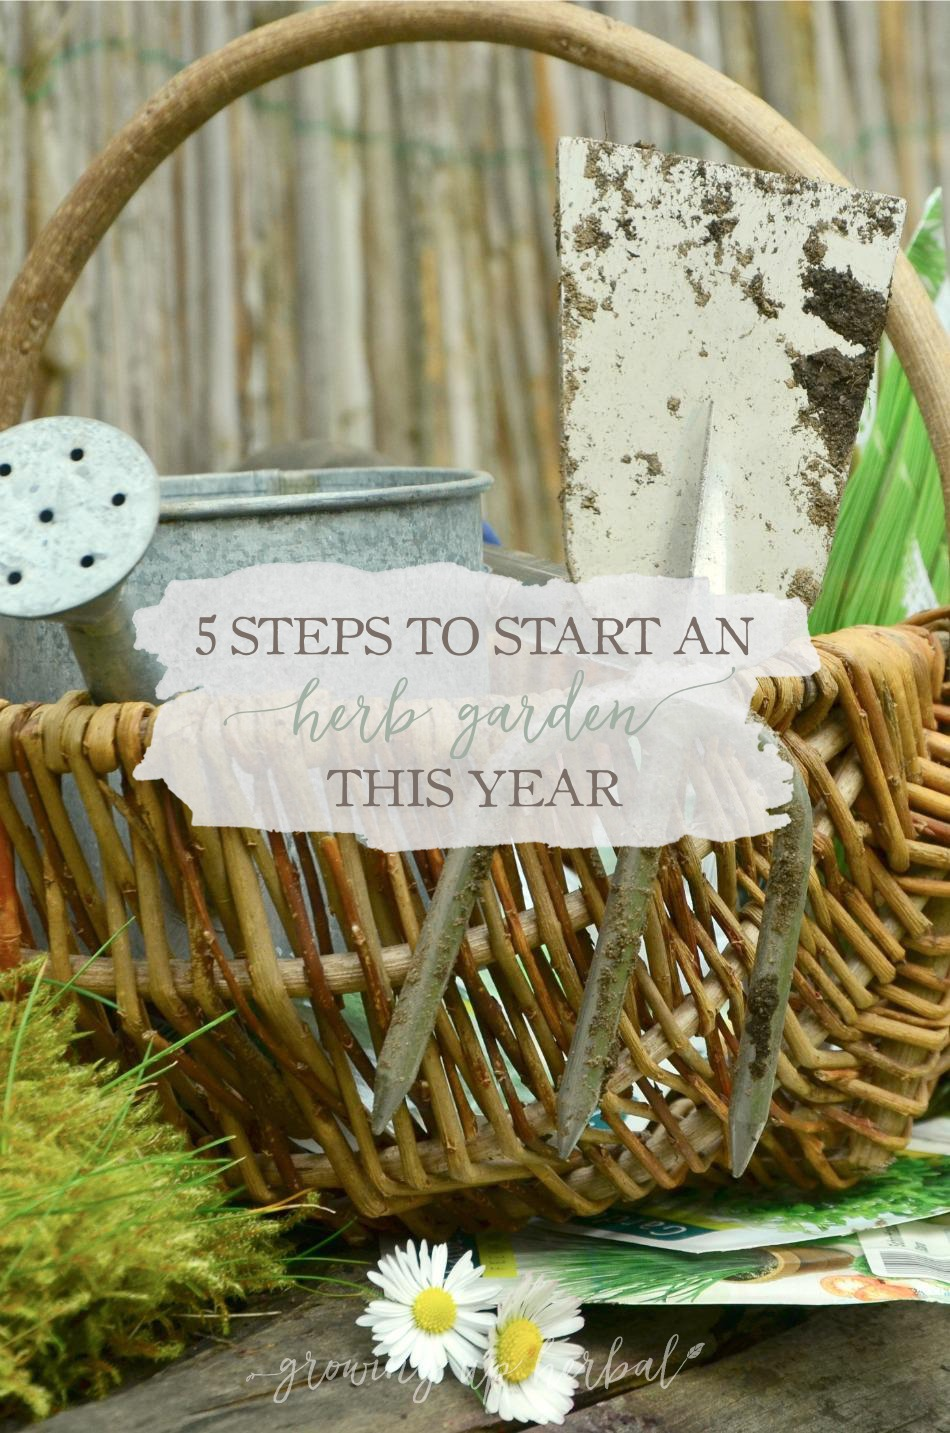 5 Steps to Start an Herb Garden This Year